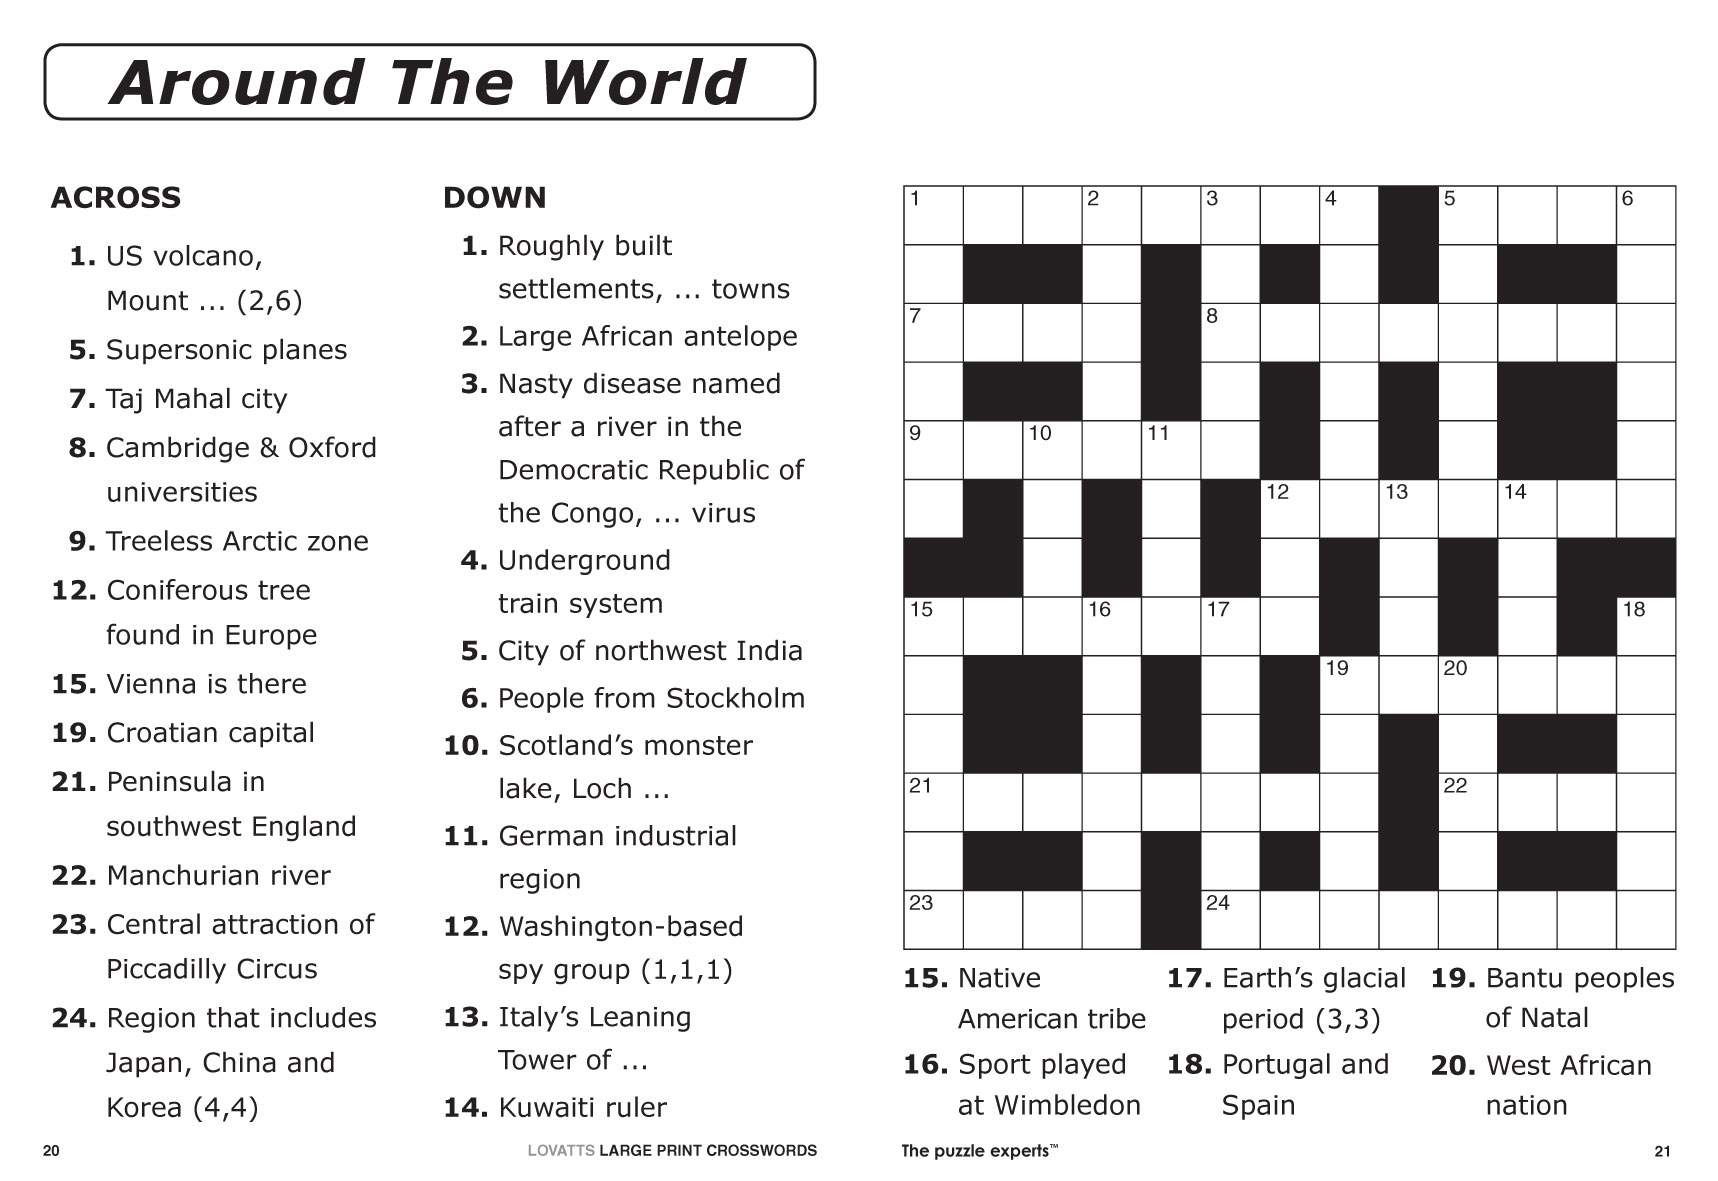 image relating to Cryptic Crosswords Printable named Cryptic crosswords puzzles cost-free k--k.ultimate 2019